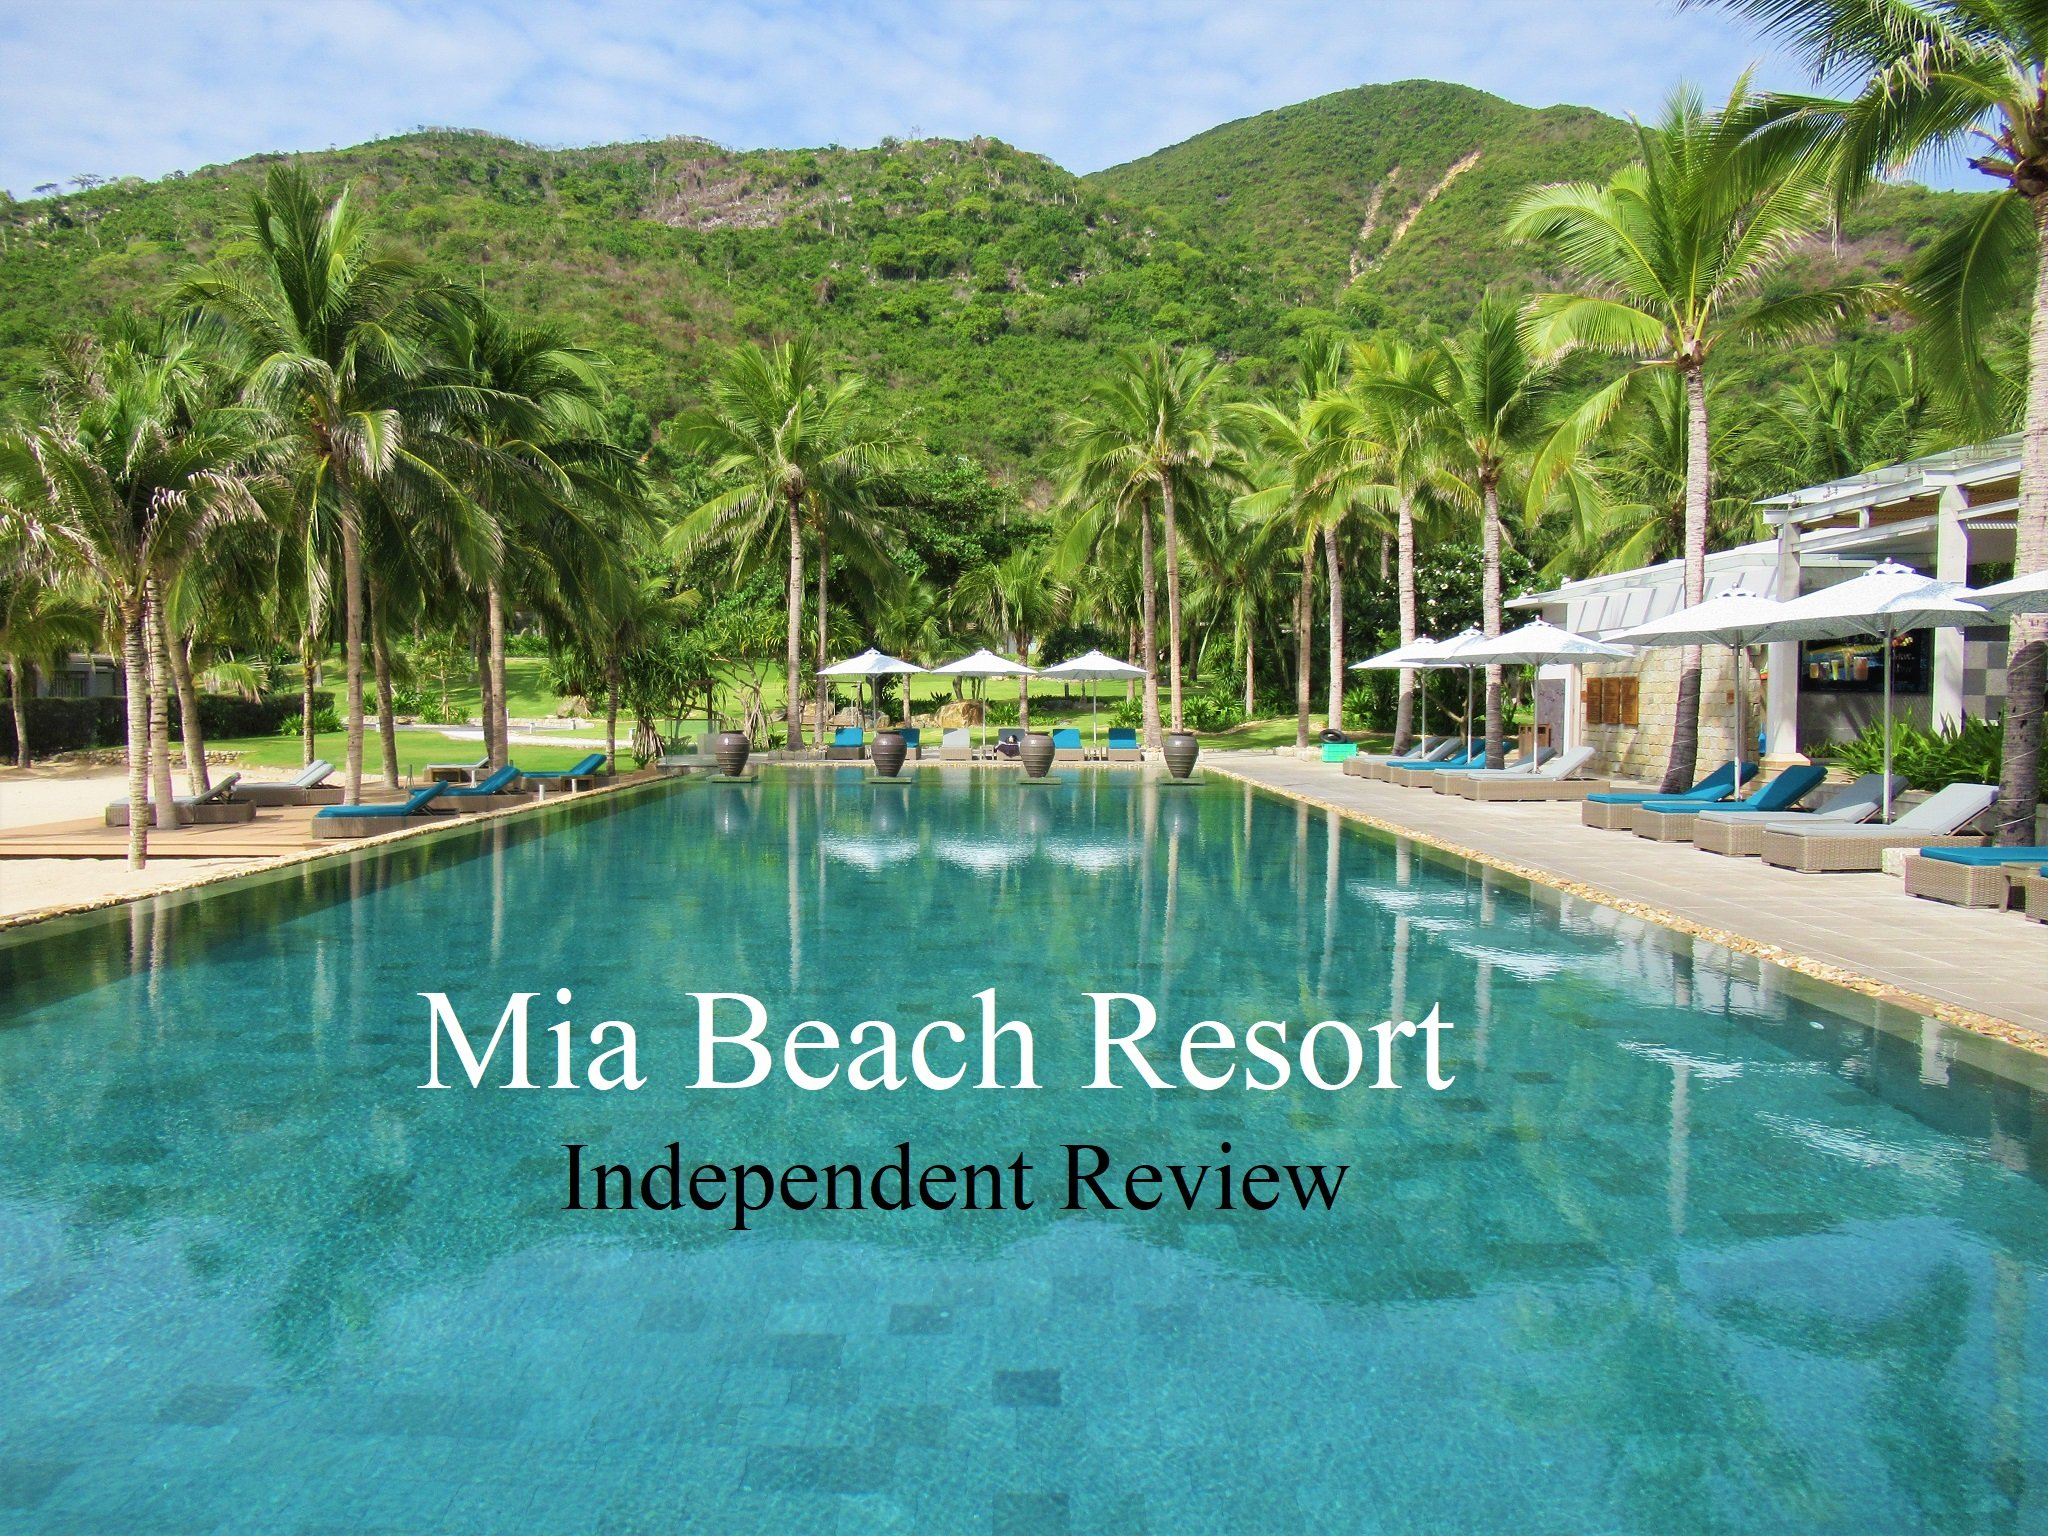 Mia Resort Nha Trang, Vietnam, Independent Review